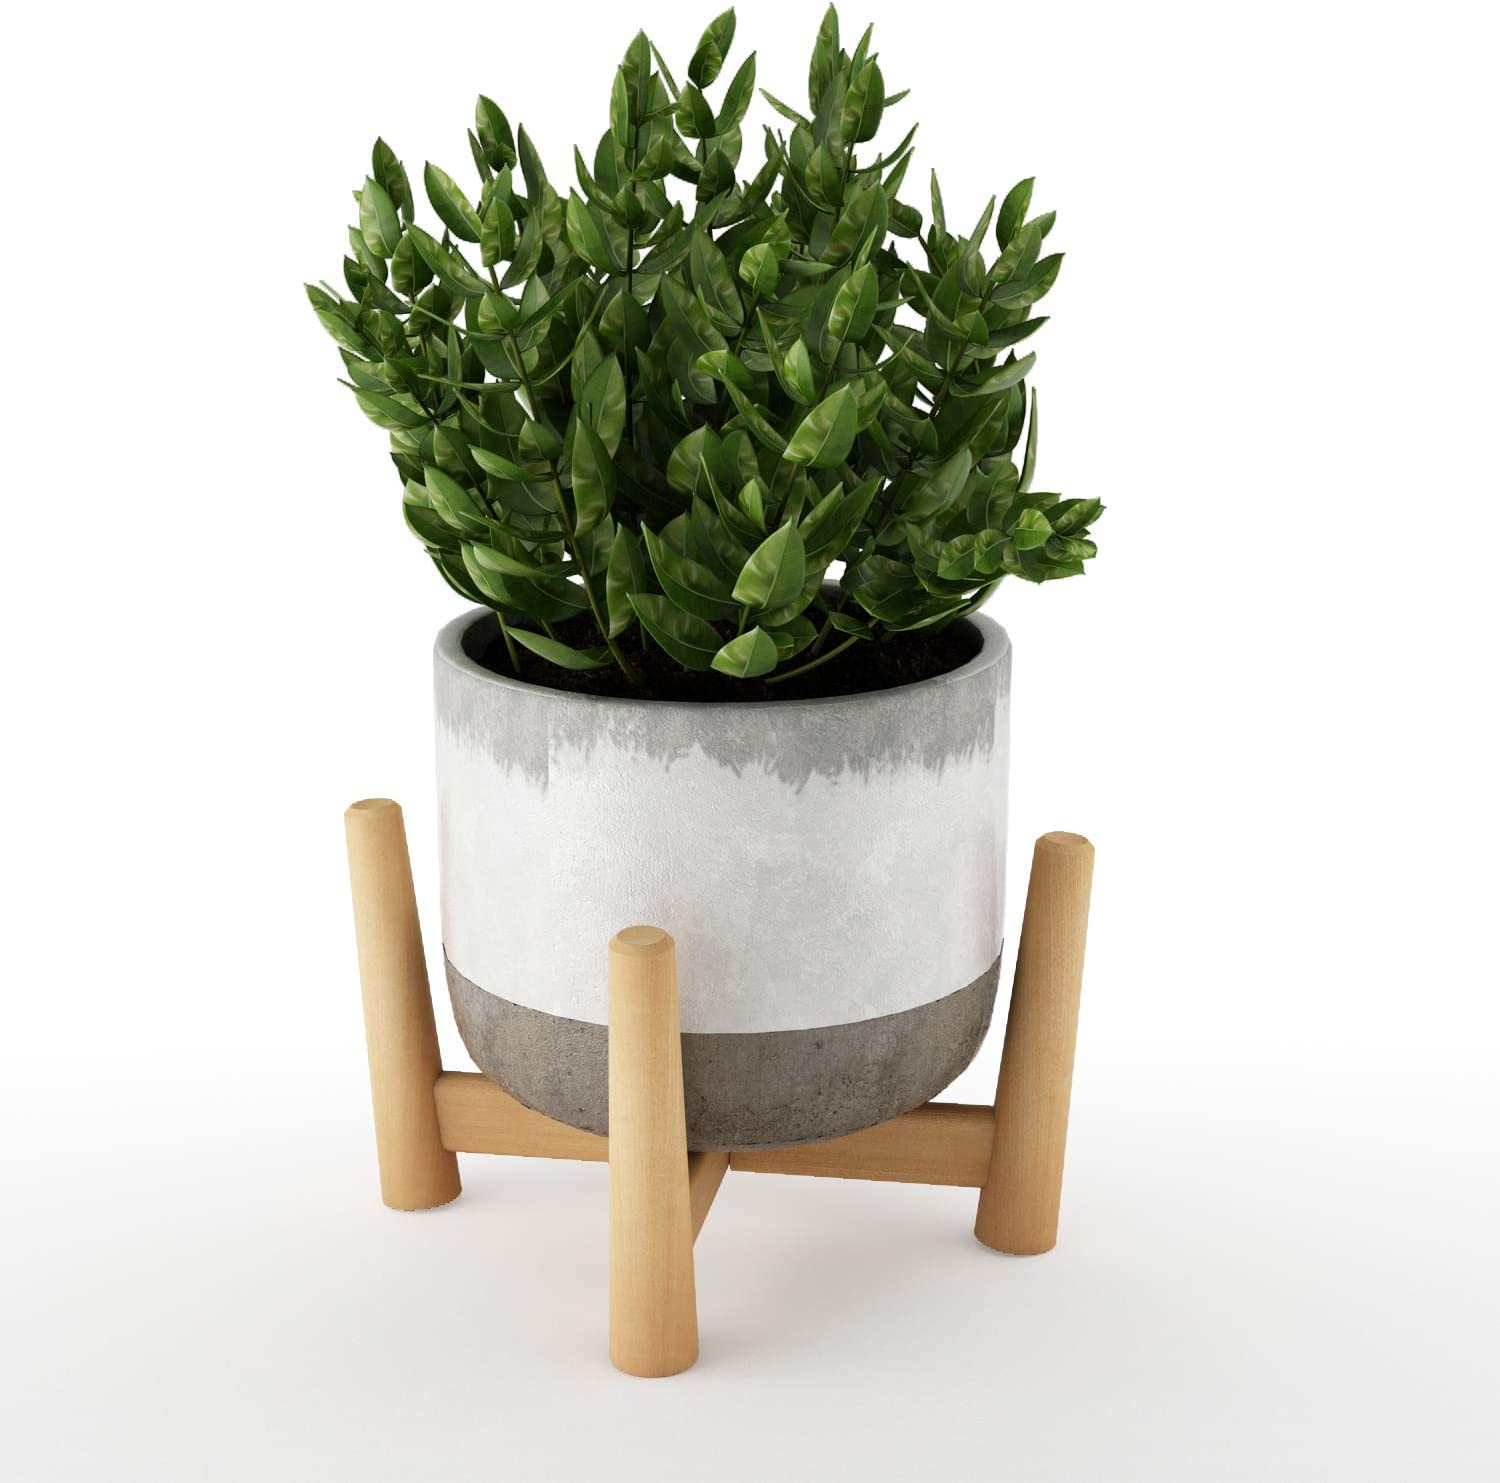 Plant Stand Mid Century Modern Flower Pot Stand Small Potted Plant Holder, 5.3 X 4.3 Inch (Planter Not Included)